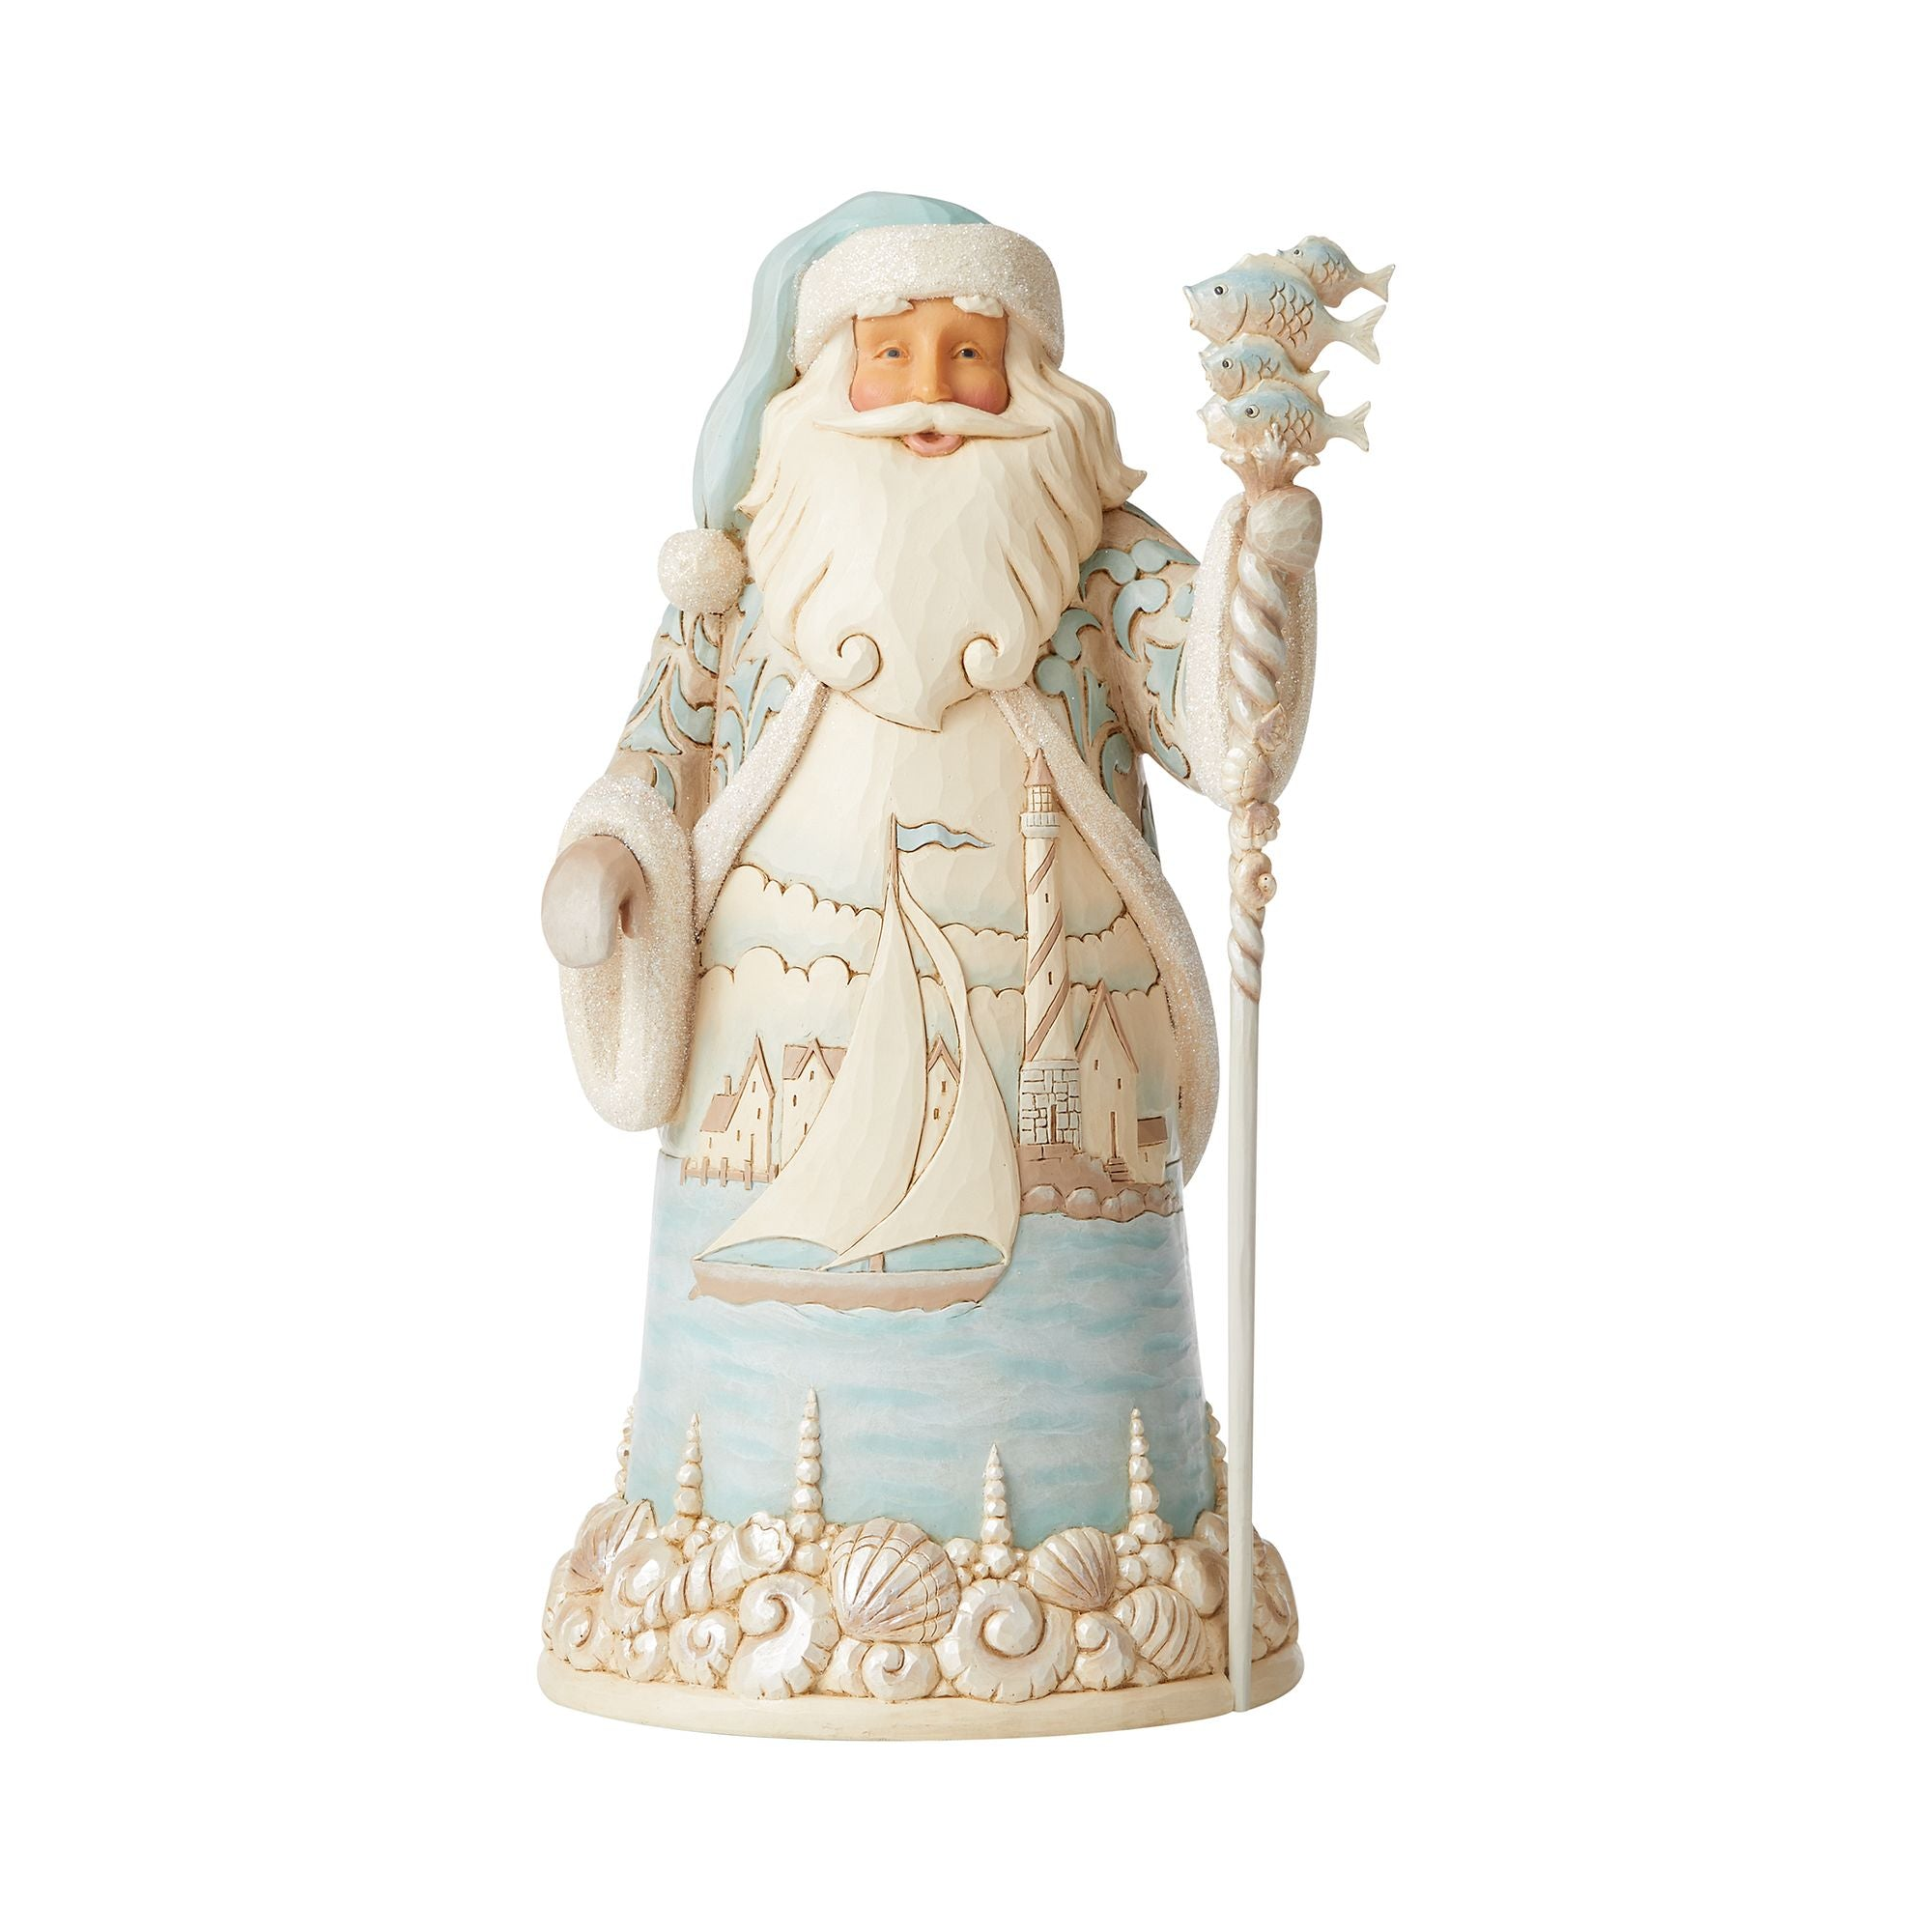 Coastal Santa/Sailboat Scene